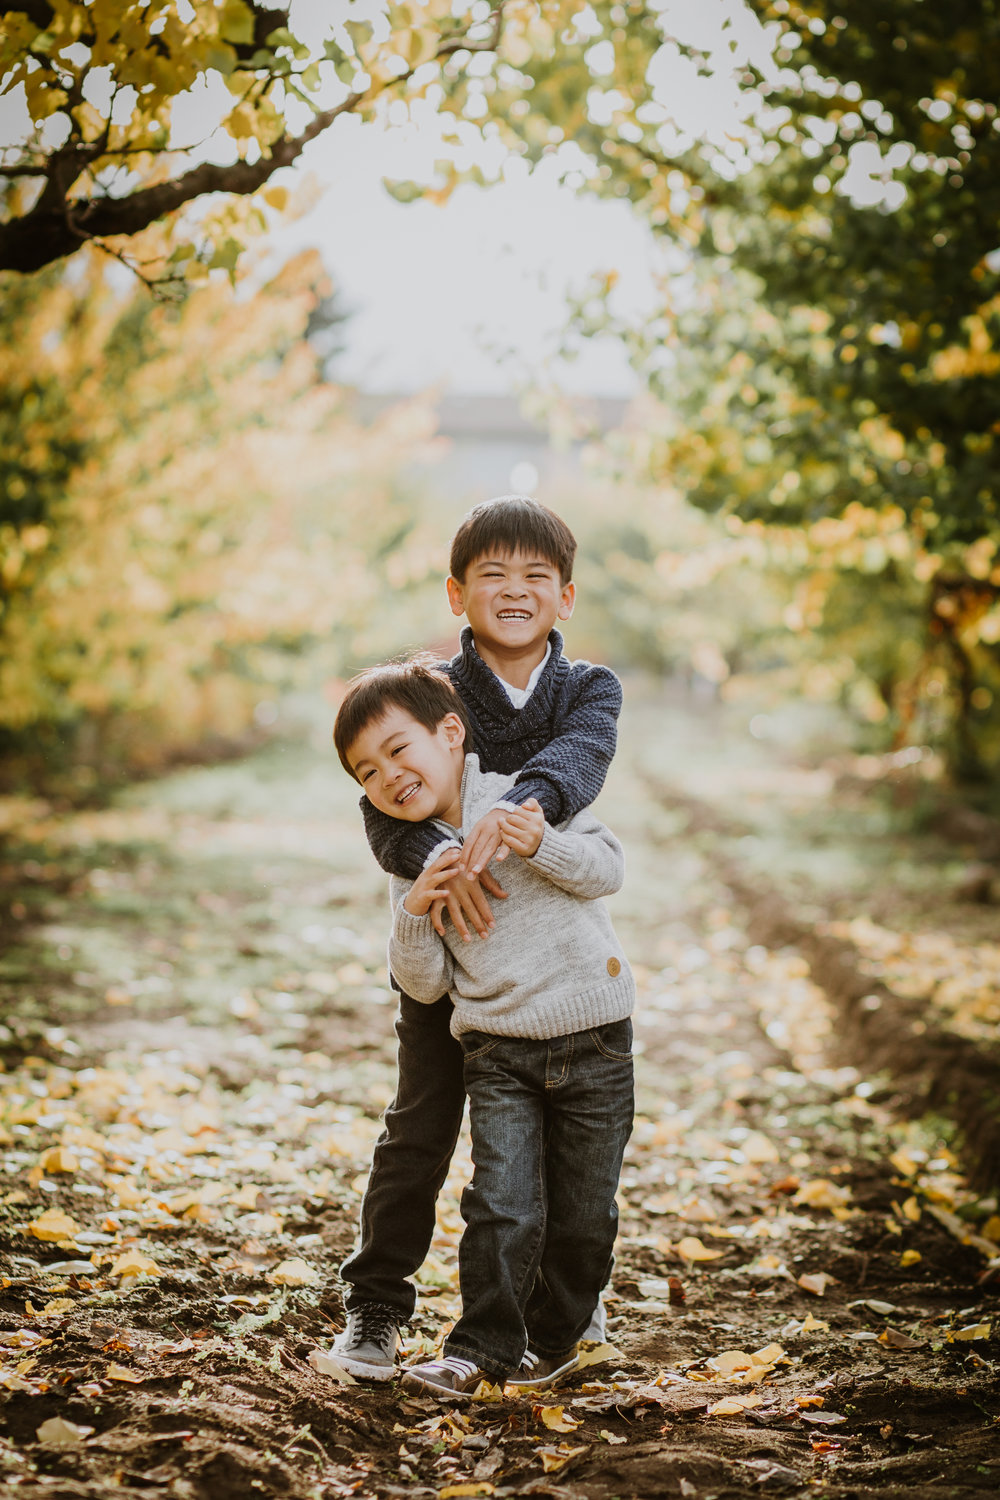 bre thurston photography | san francisco bay area california photographer | outdoor natural light family lifestyle